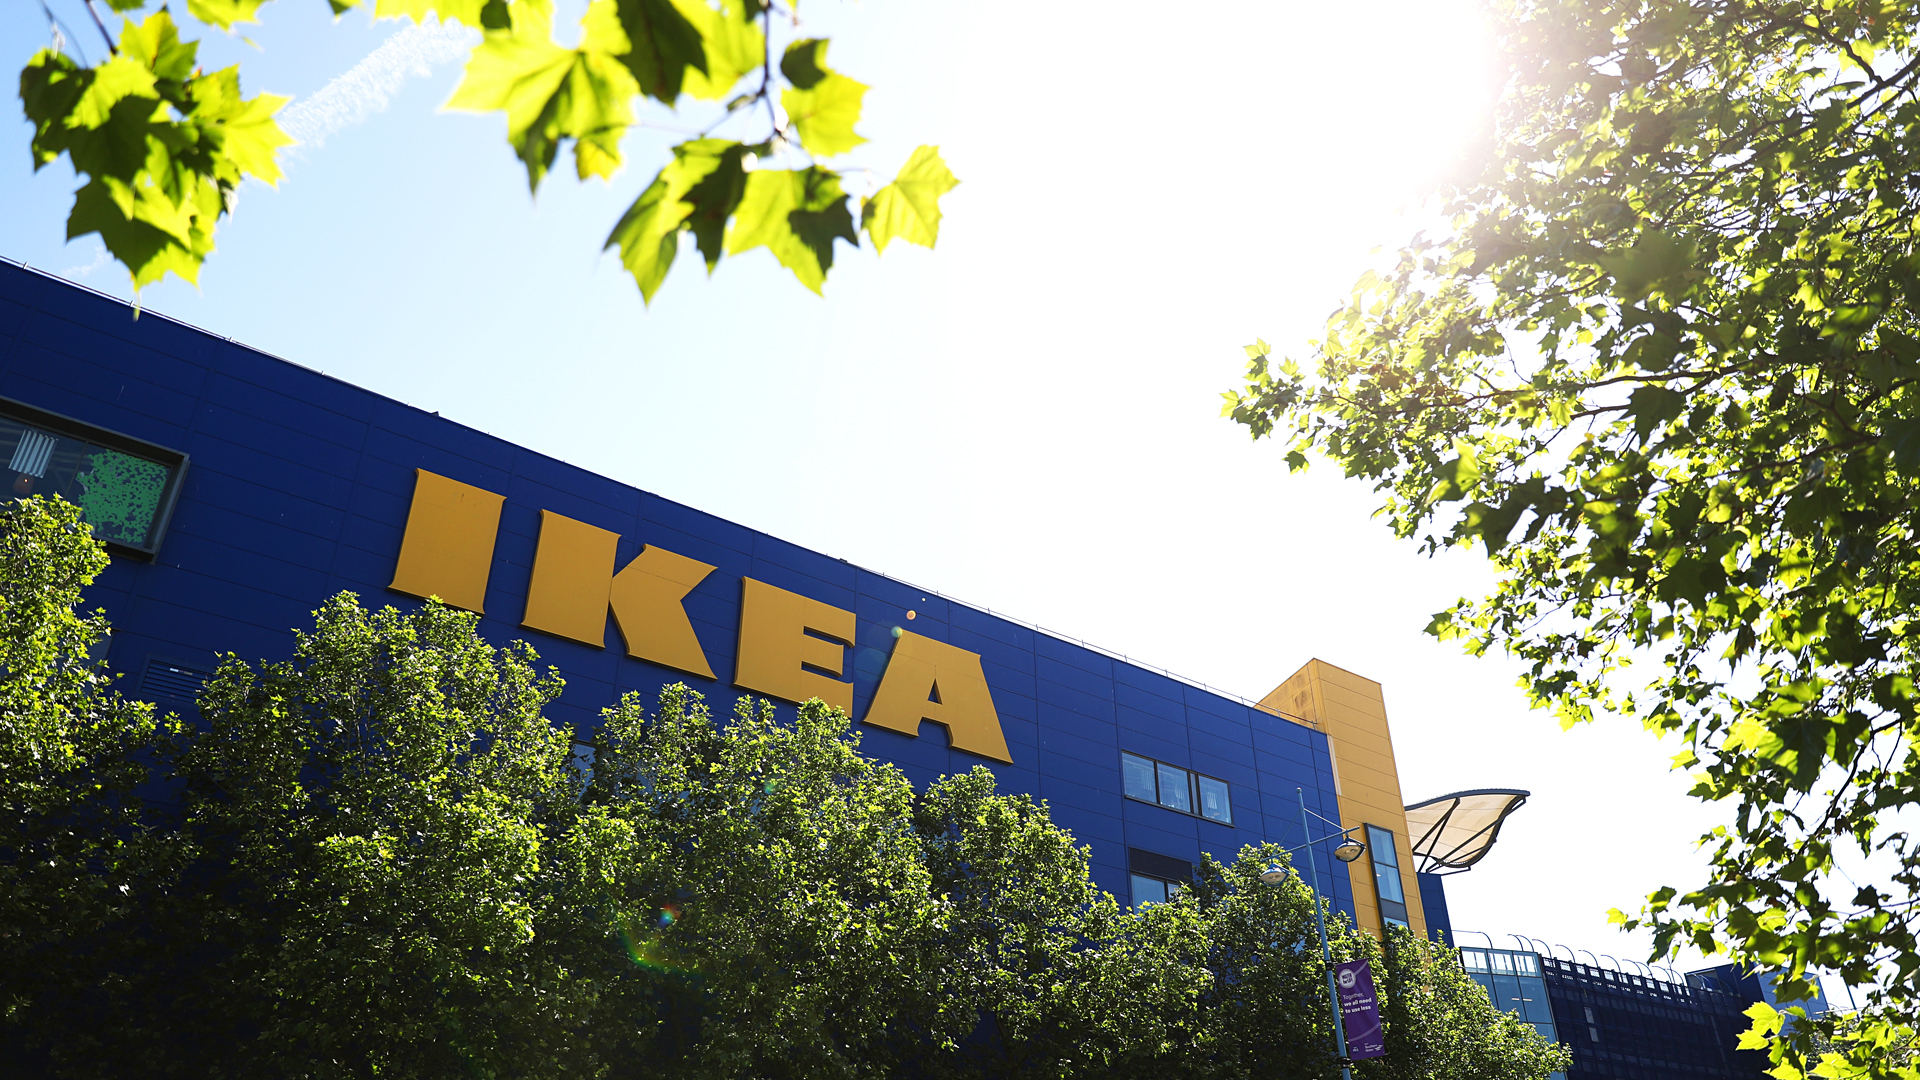 Indian Furniture Retail Story: IKEA Takes Hold As India's Sam Walton Bends